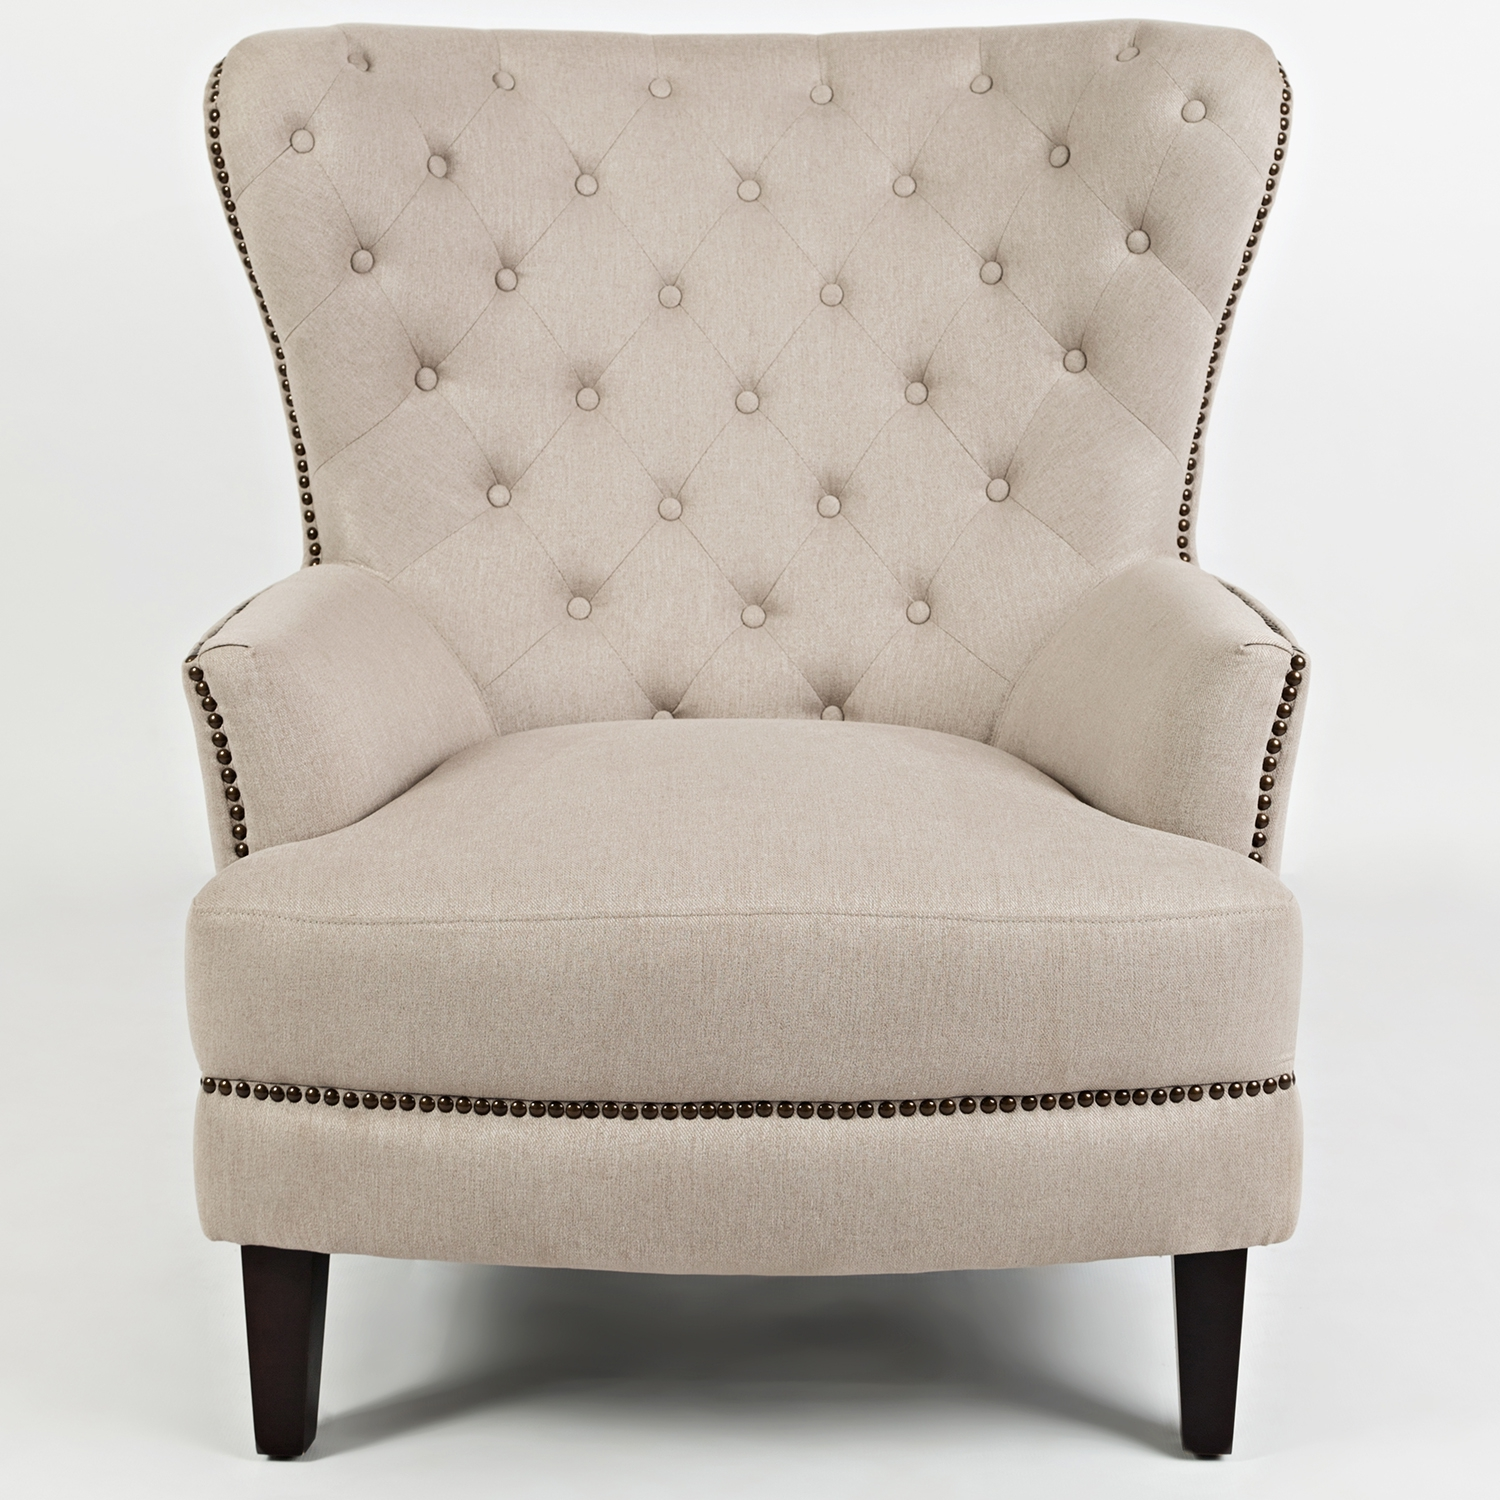 Conner Wingback Accent Chair In Tufted Easy Living Taupe Fabric W/ Nailhead  Trim